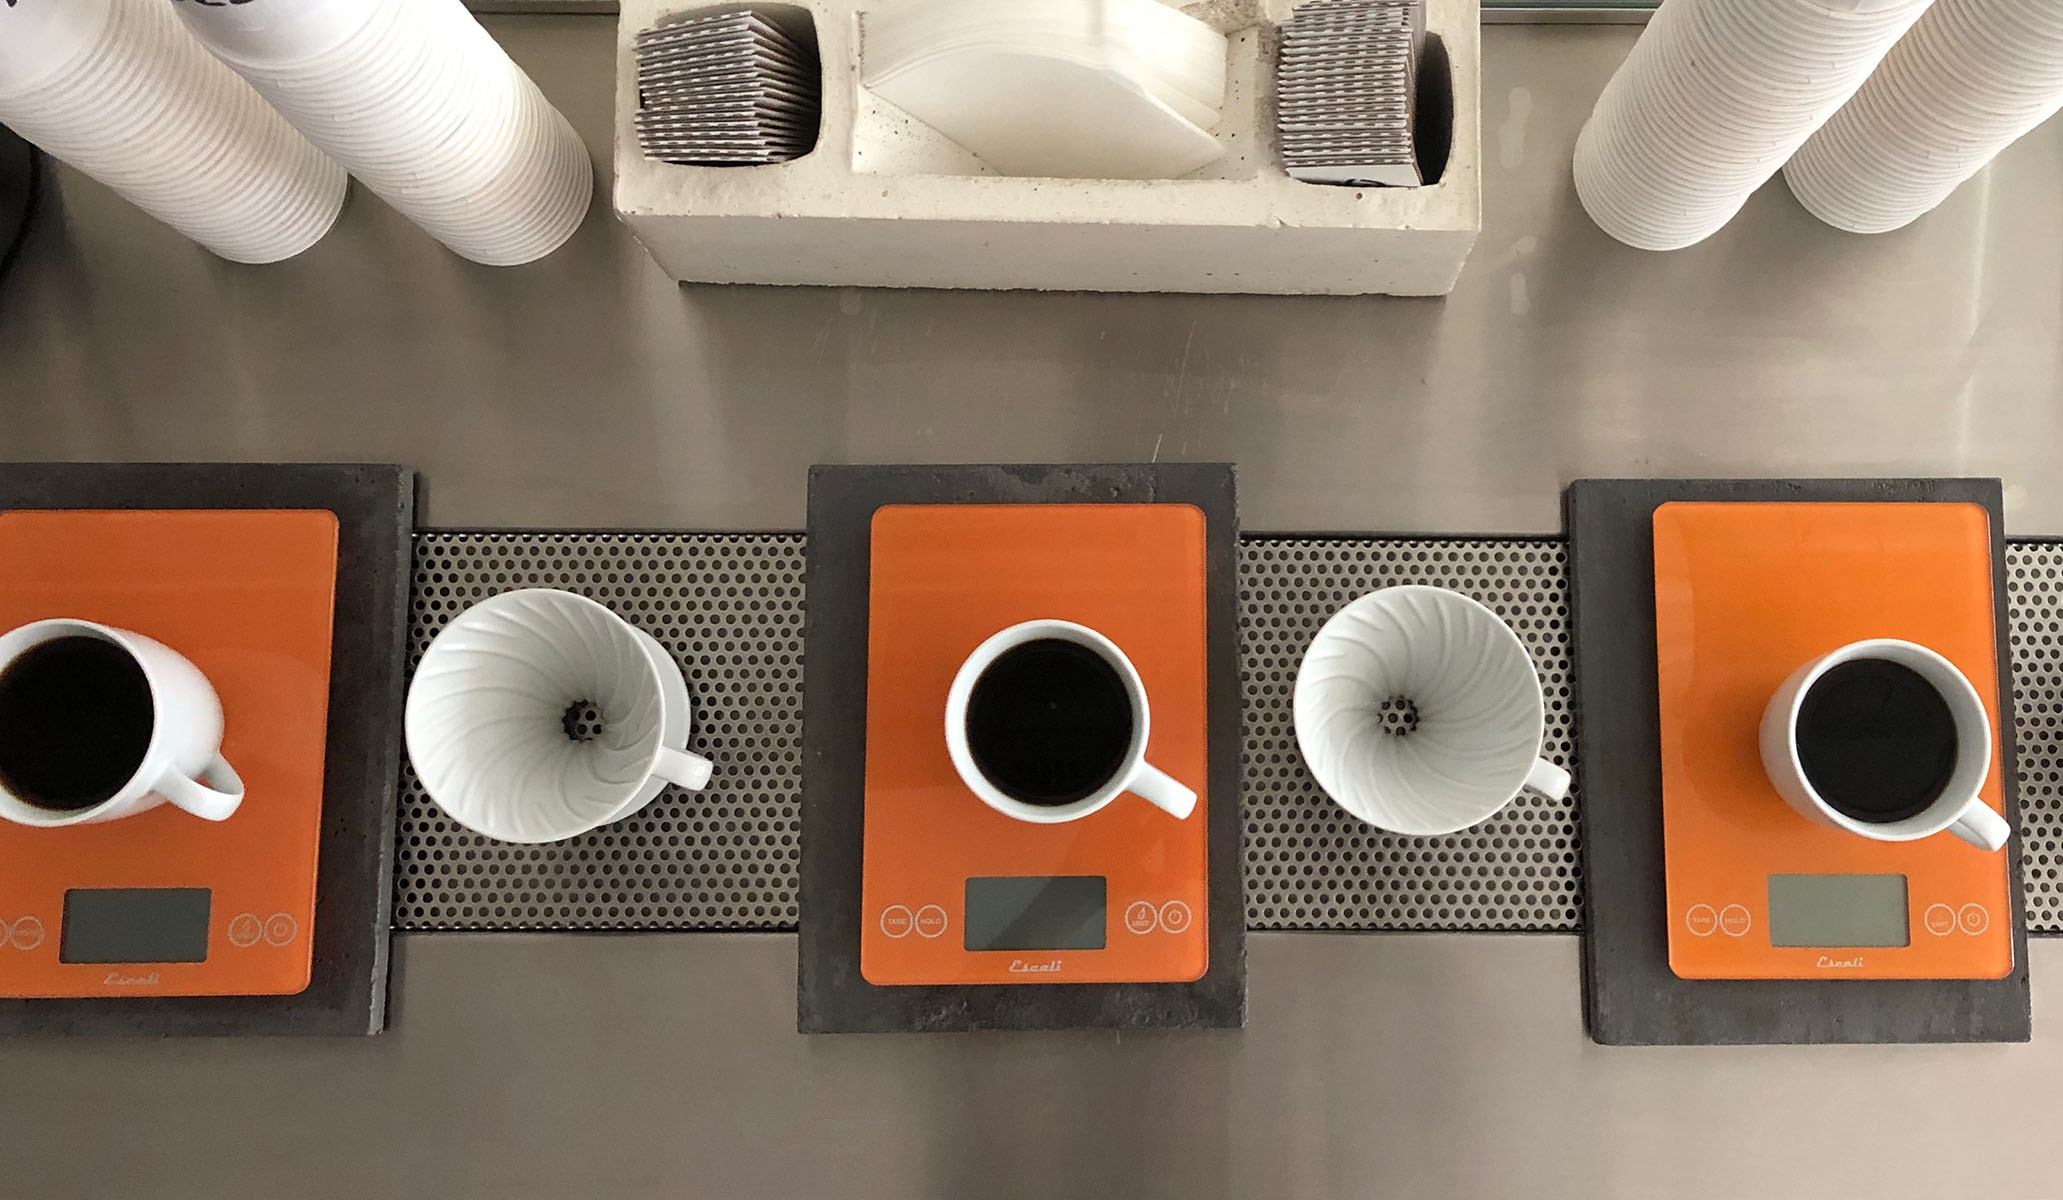 BREW COFFEE - We brew pour over coffee to order in our cafe using the V60 method.